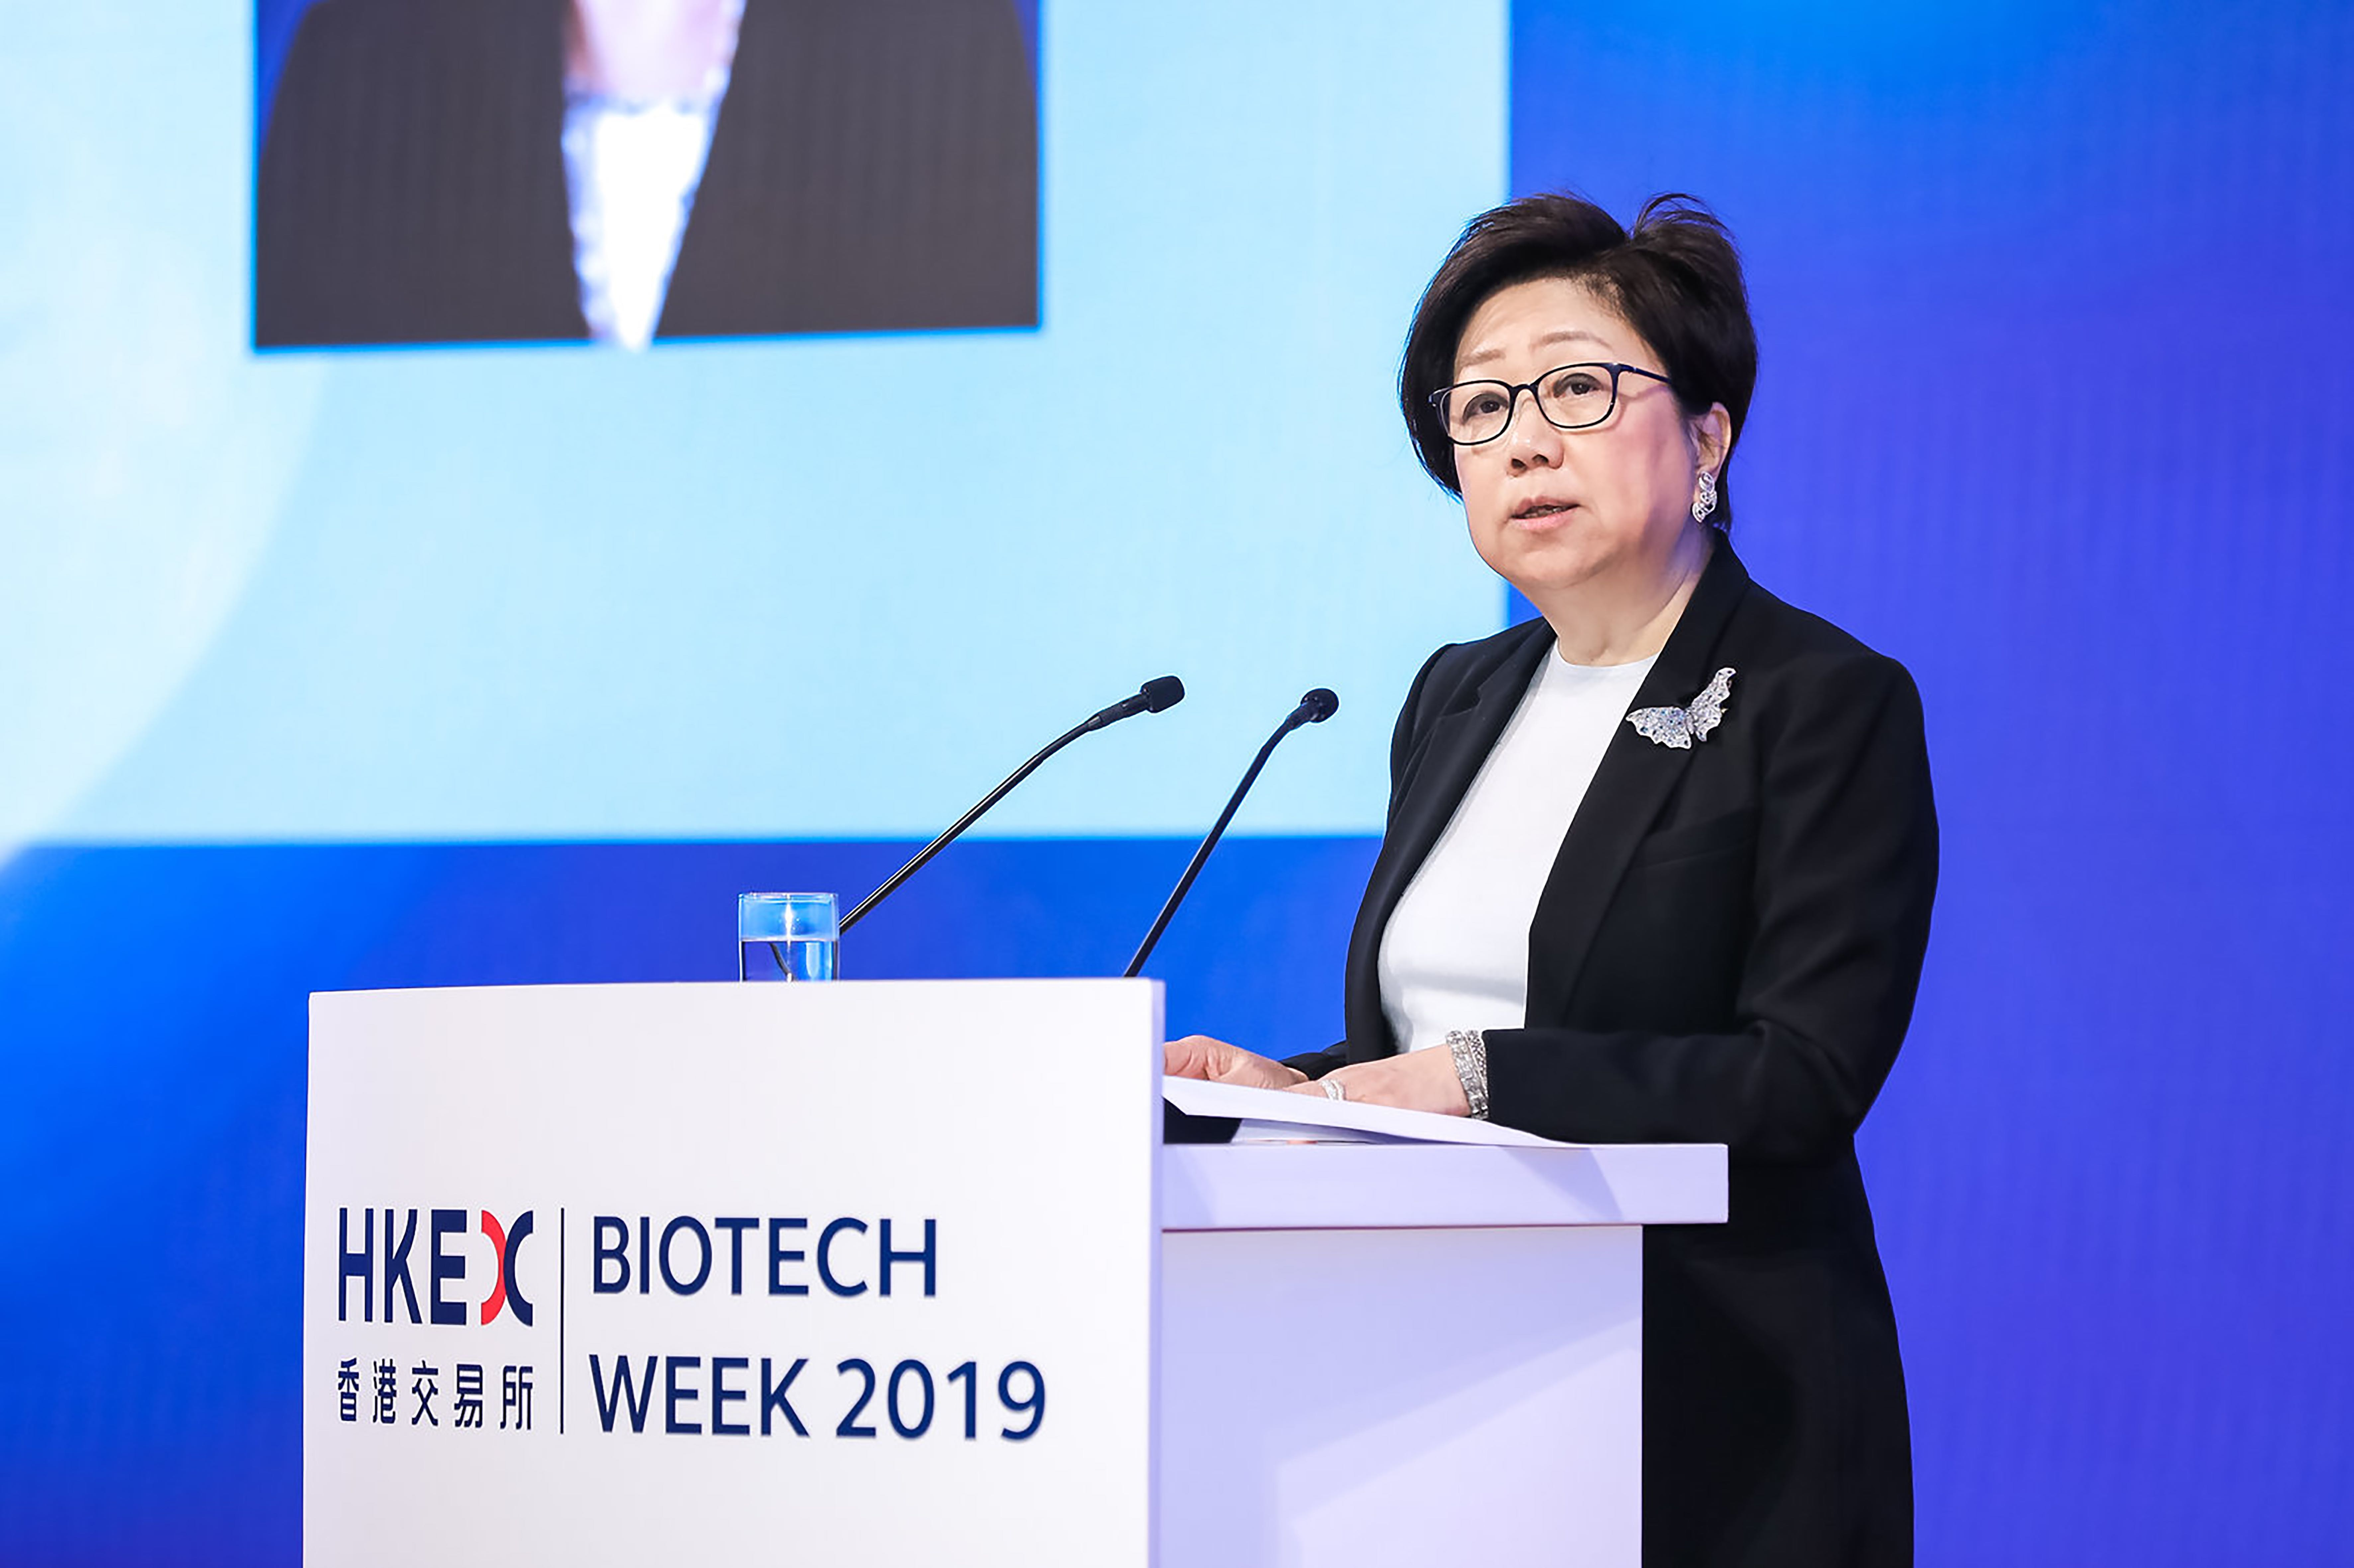 HKEX Chairman Laura M Cha welcomes delegates and guests to the second HKEX Biotech Summit on 29 May 2019